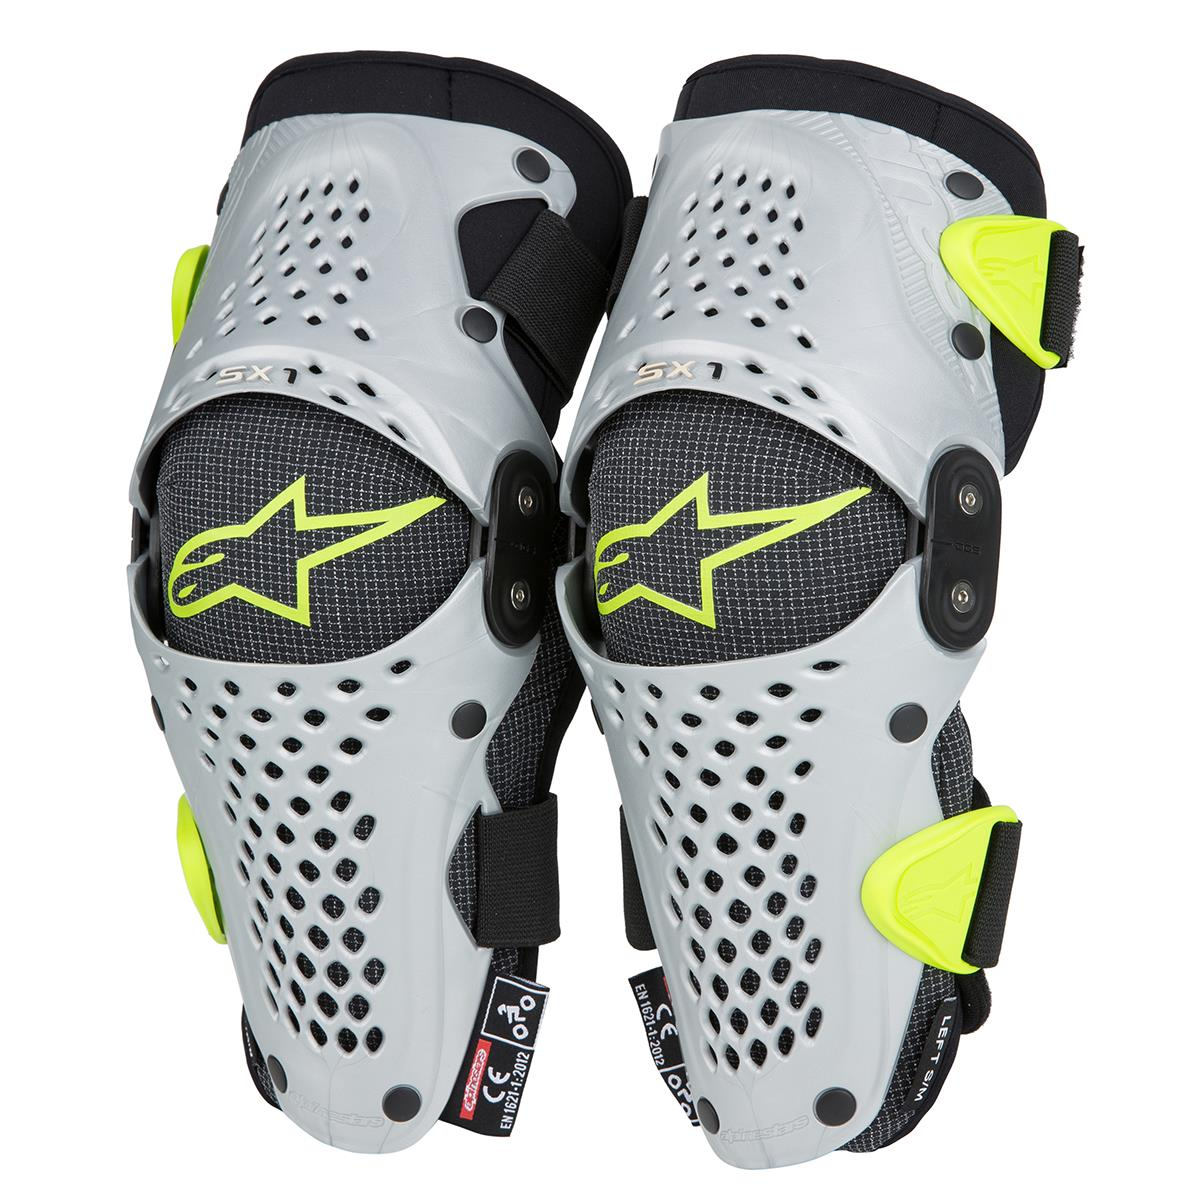 SX-1 Knee Guards